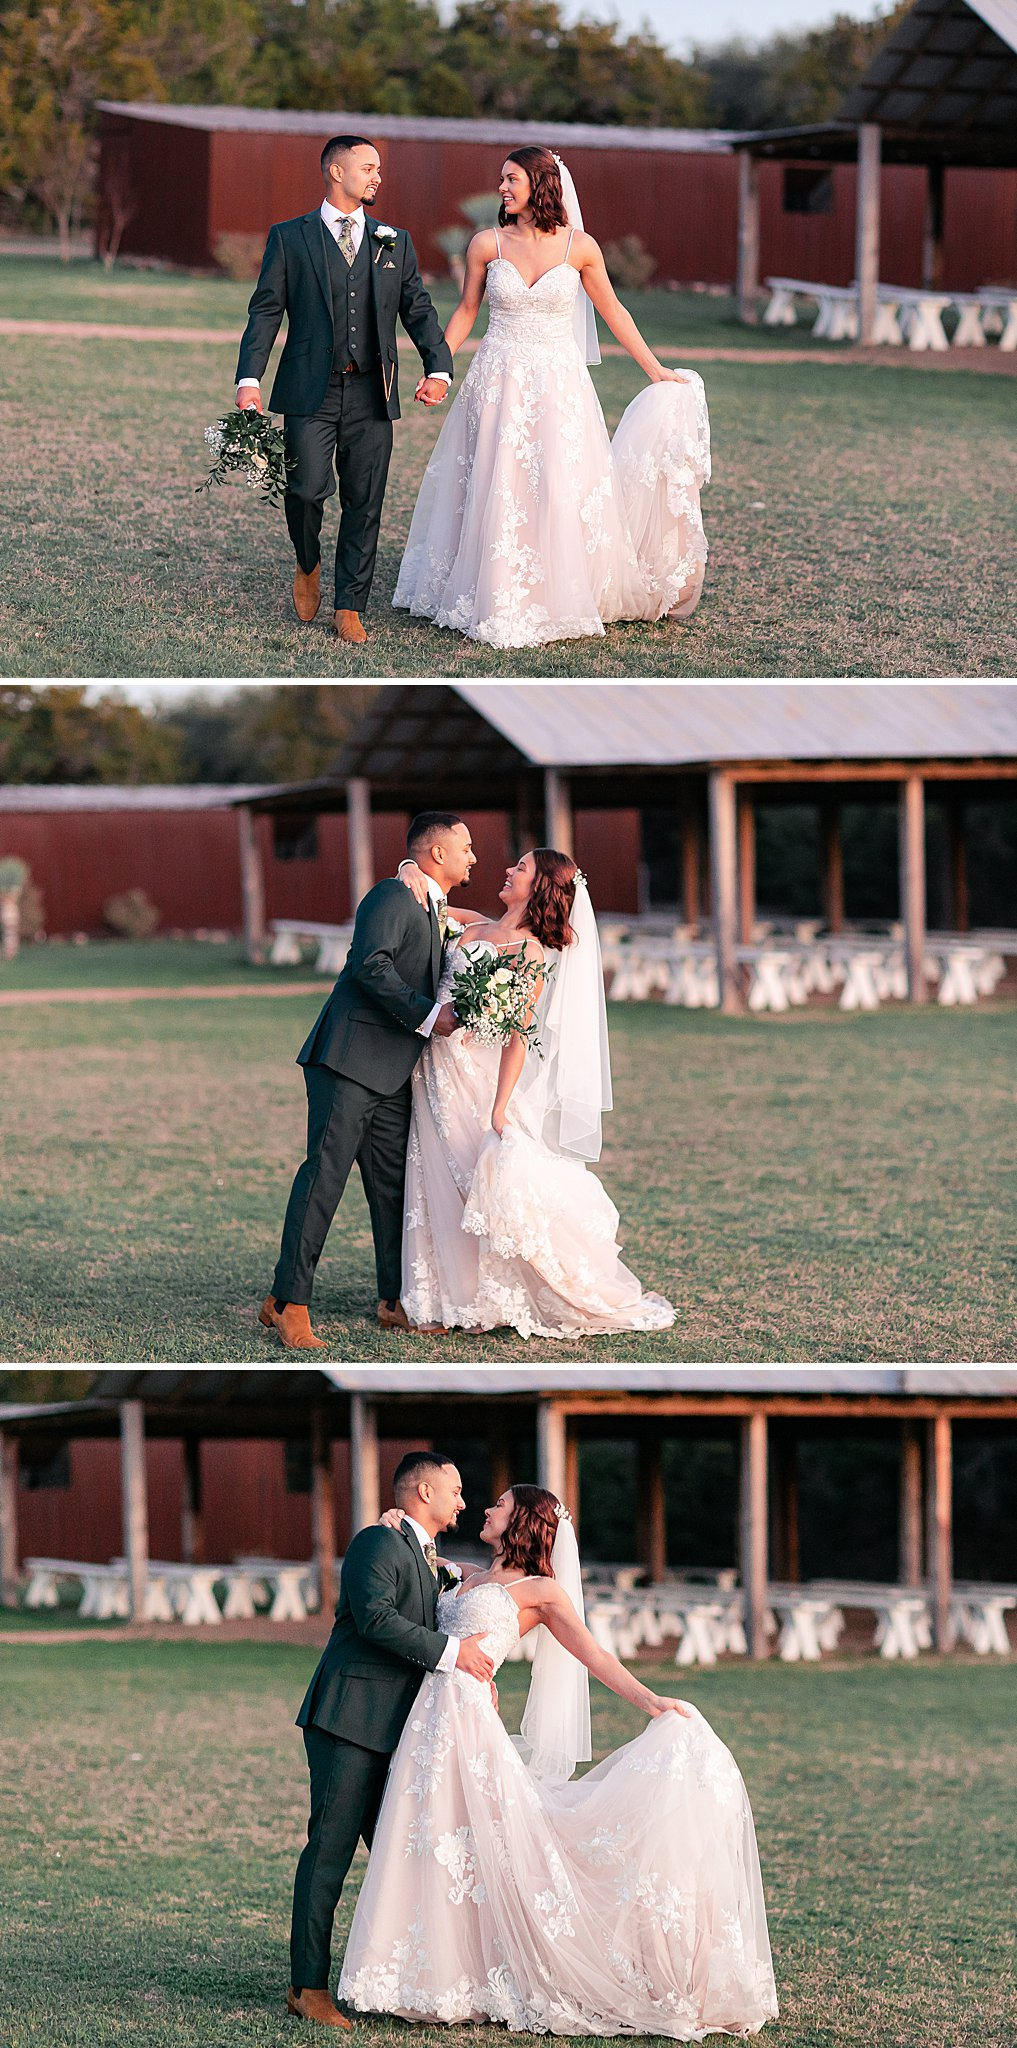 Carly-Barton-Photography-Texas-Wedding-Photographer-Western-Sky-Wedding-Event-Venue-Emerald-Green-Theme_0087.jpg